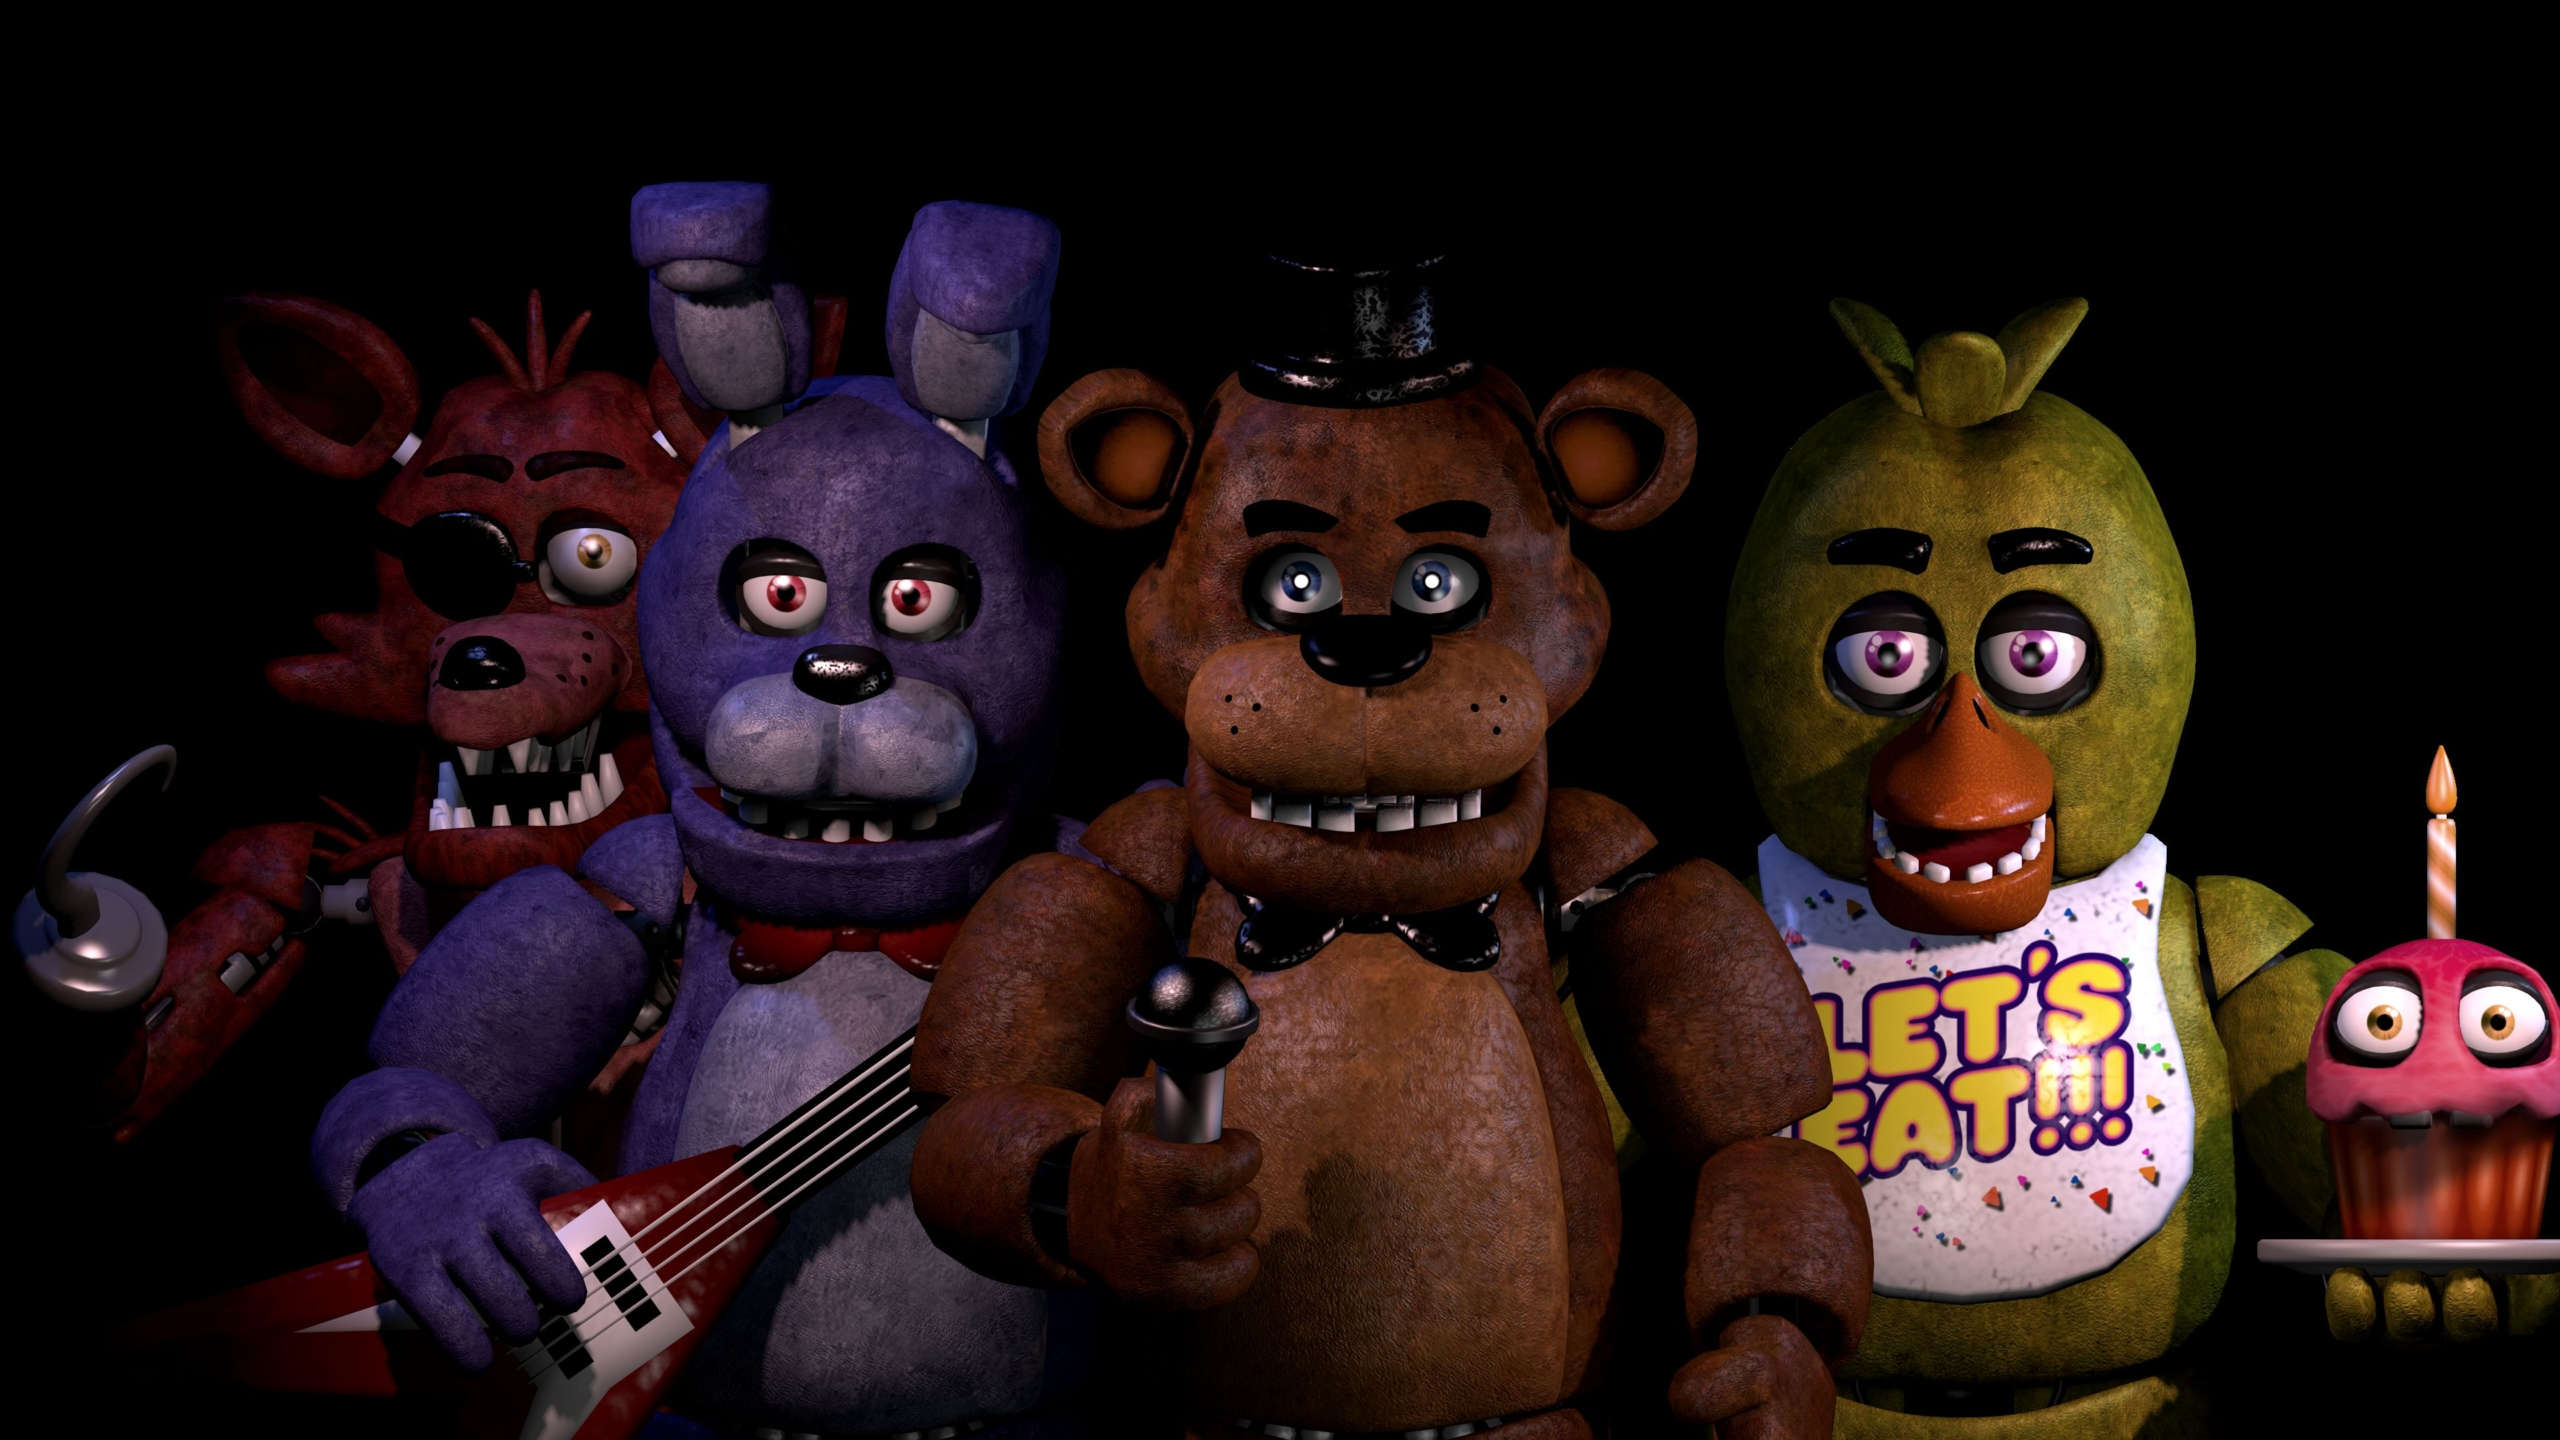 A New and Improved Version of Fnaf Wallpaper